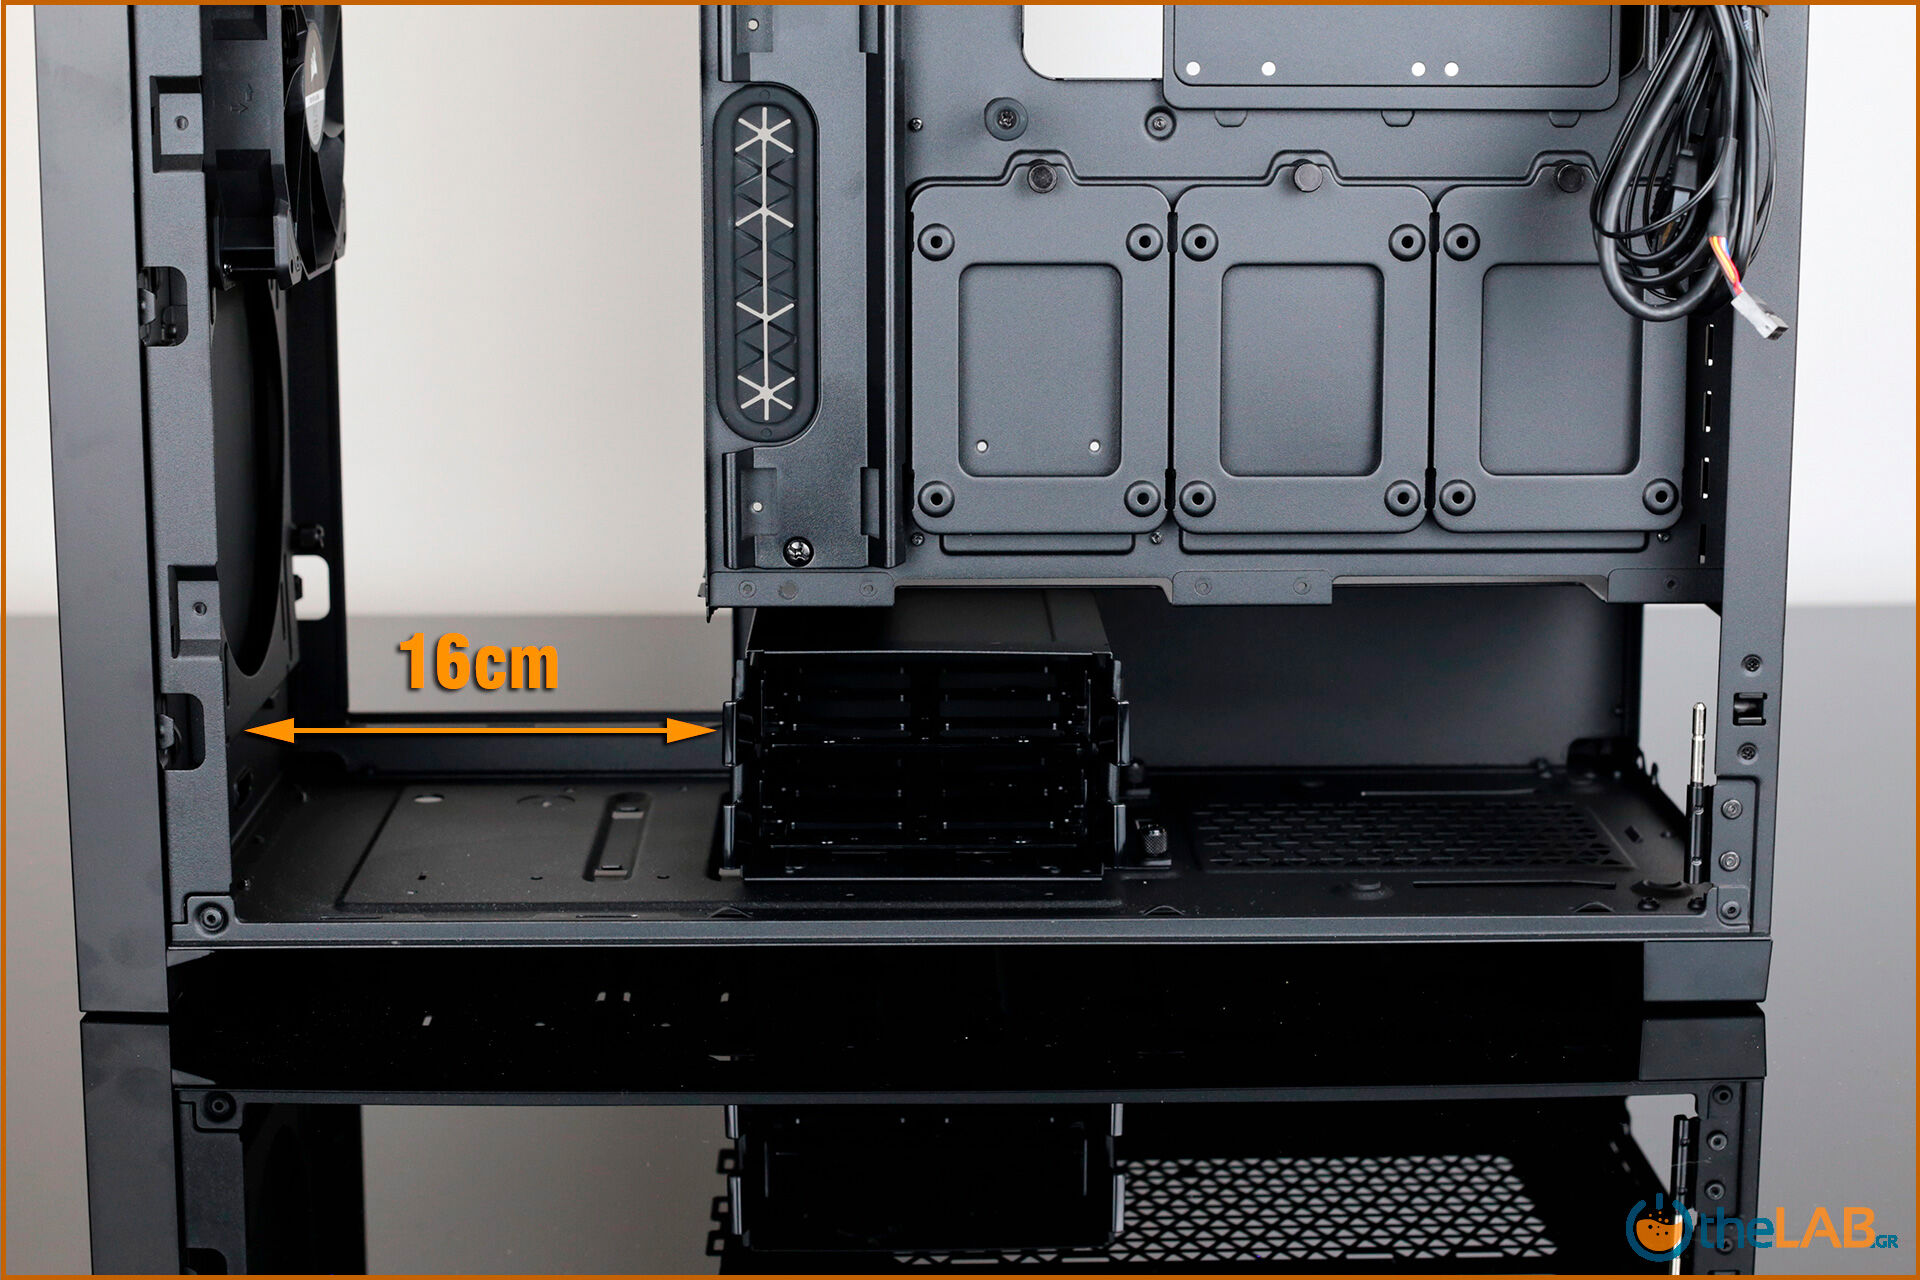 Corsair_icue_5000D__case_smart_exterior_interior_mid_tower_gaming_case_smart_review_image685.jpg